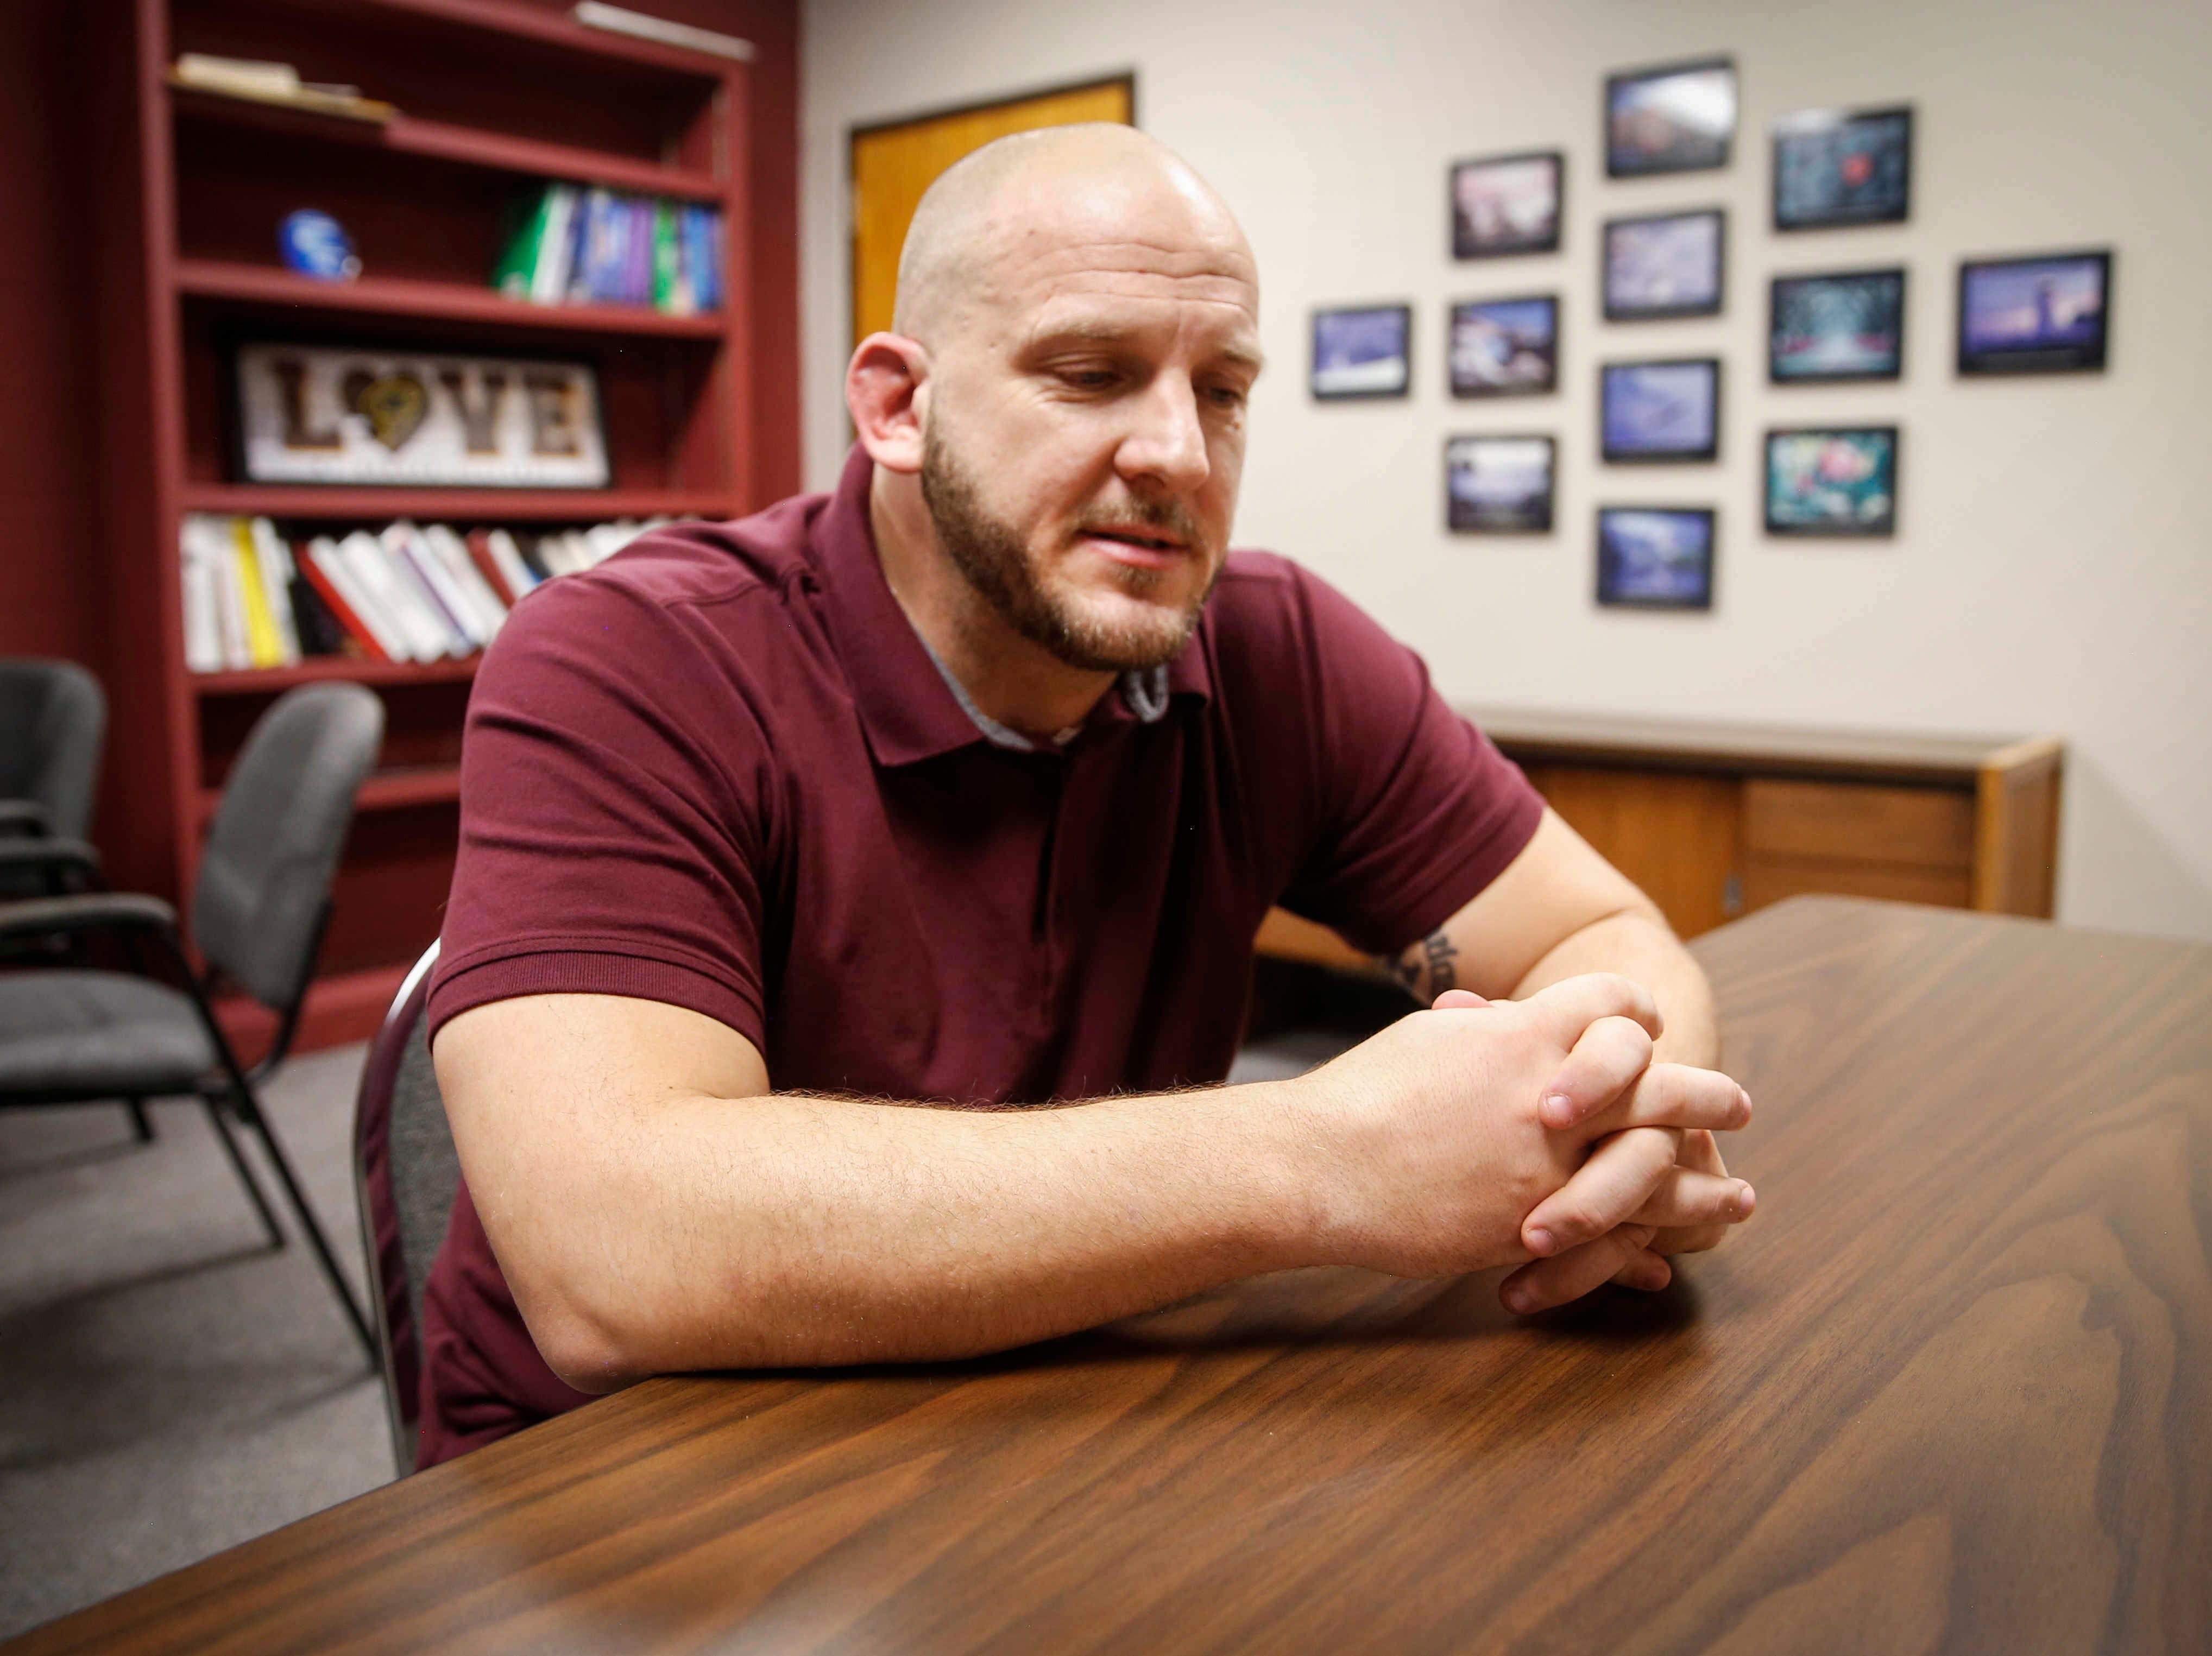 Chris Krueger, head wrestling coach at Denver High School and father of sophomore Cam Krueger, talks about the adversities his son has overcome in the sport of wrestling and in life. Cam, who was born legally blind, has forged a passion for lifting weights and wrestling.